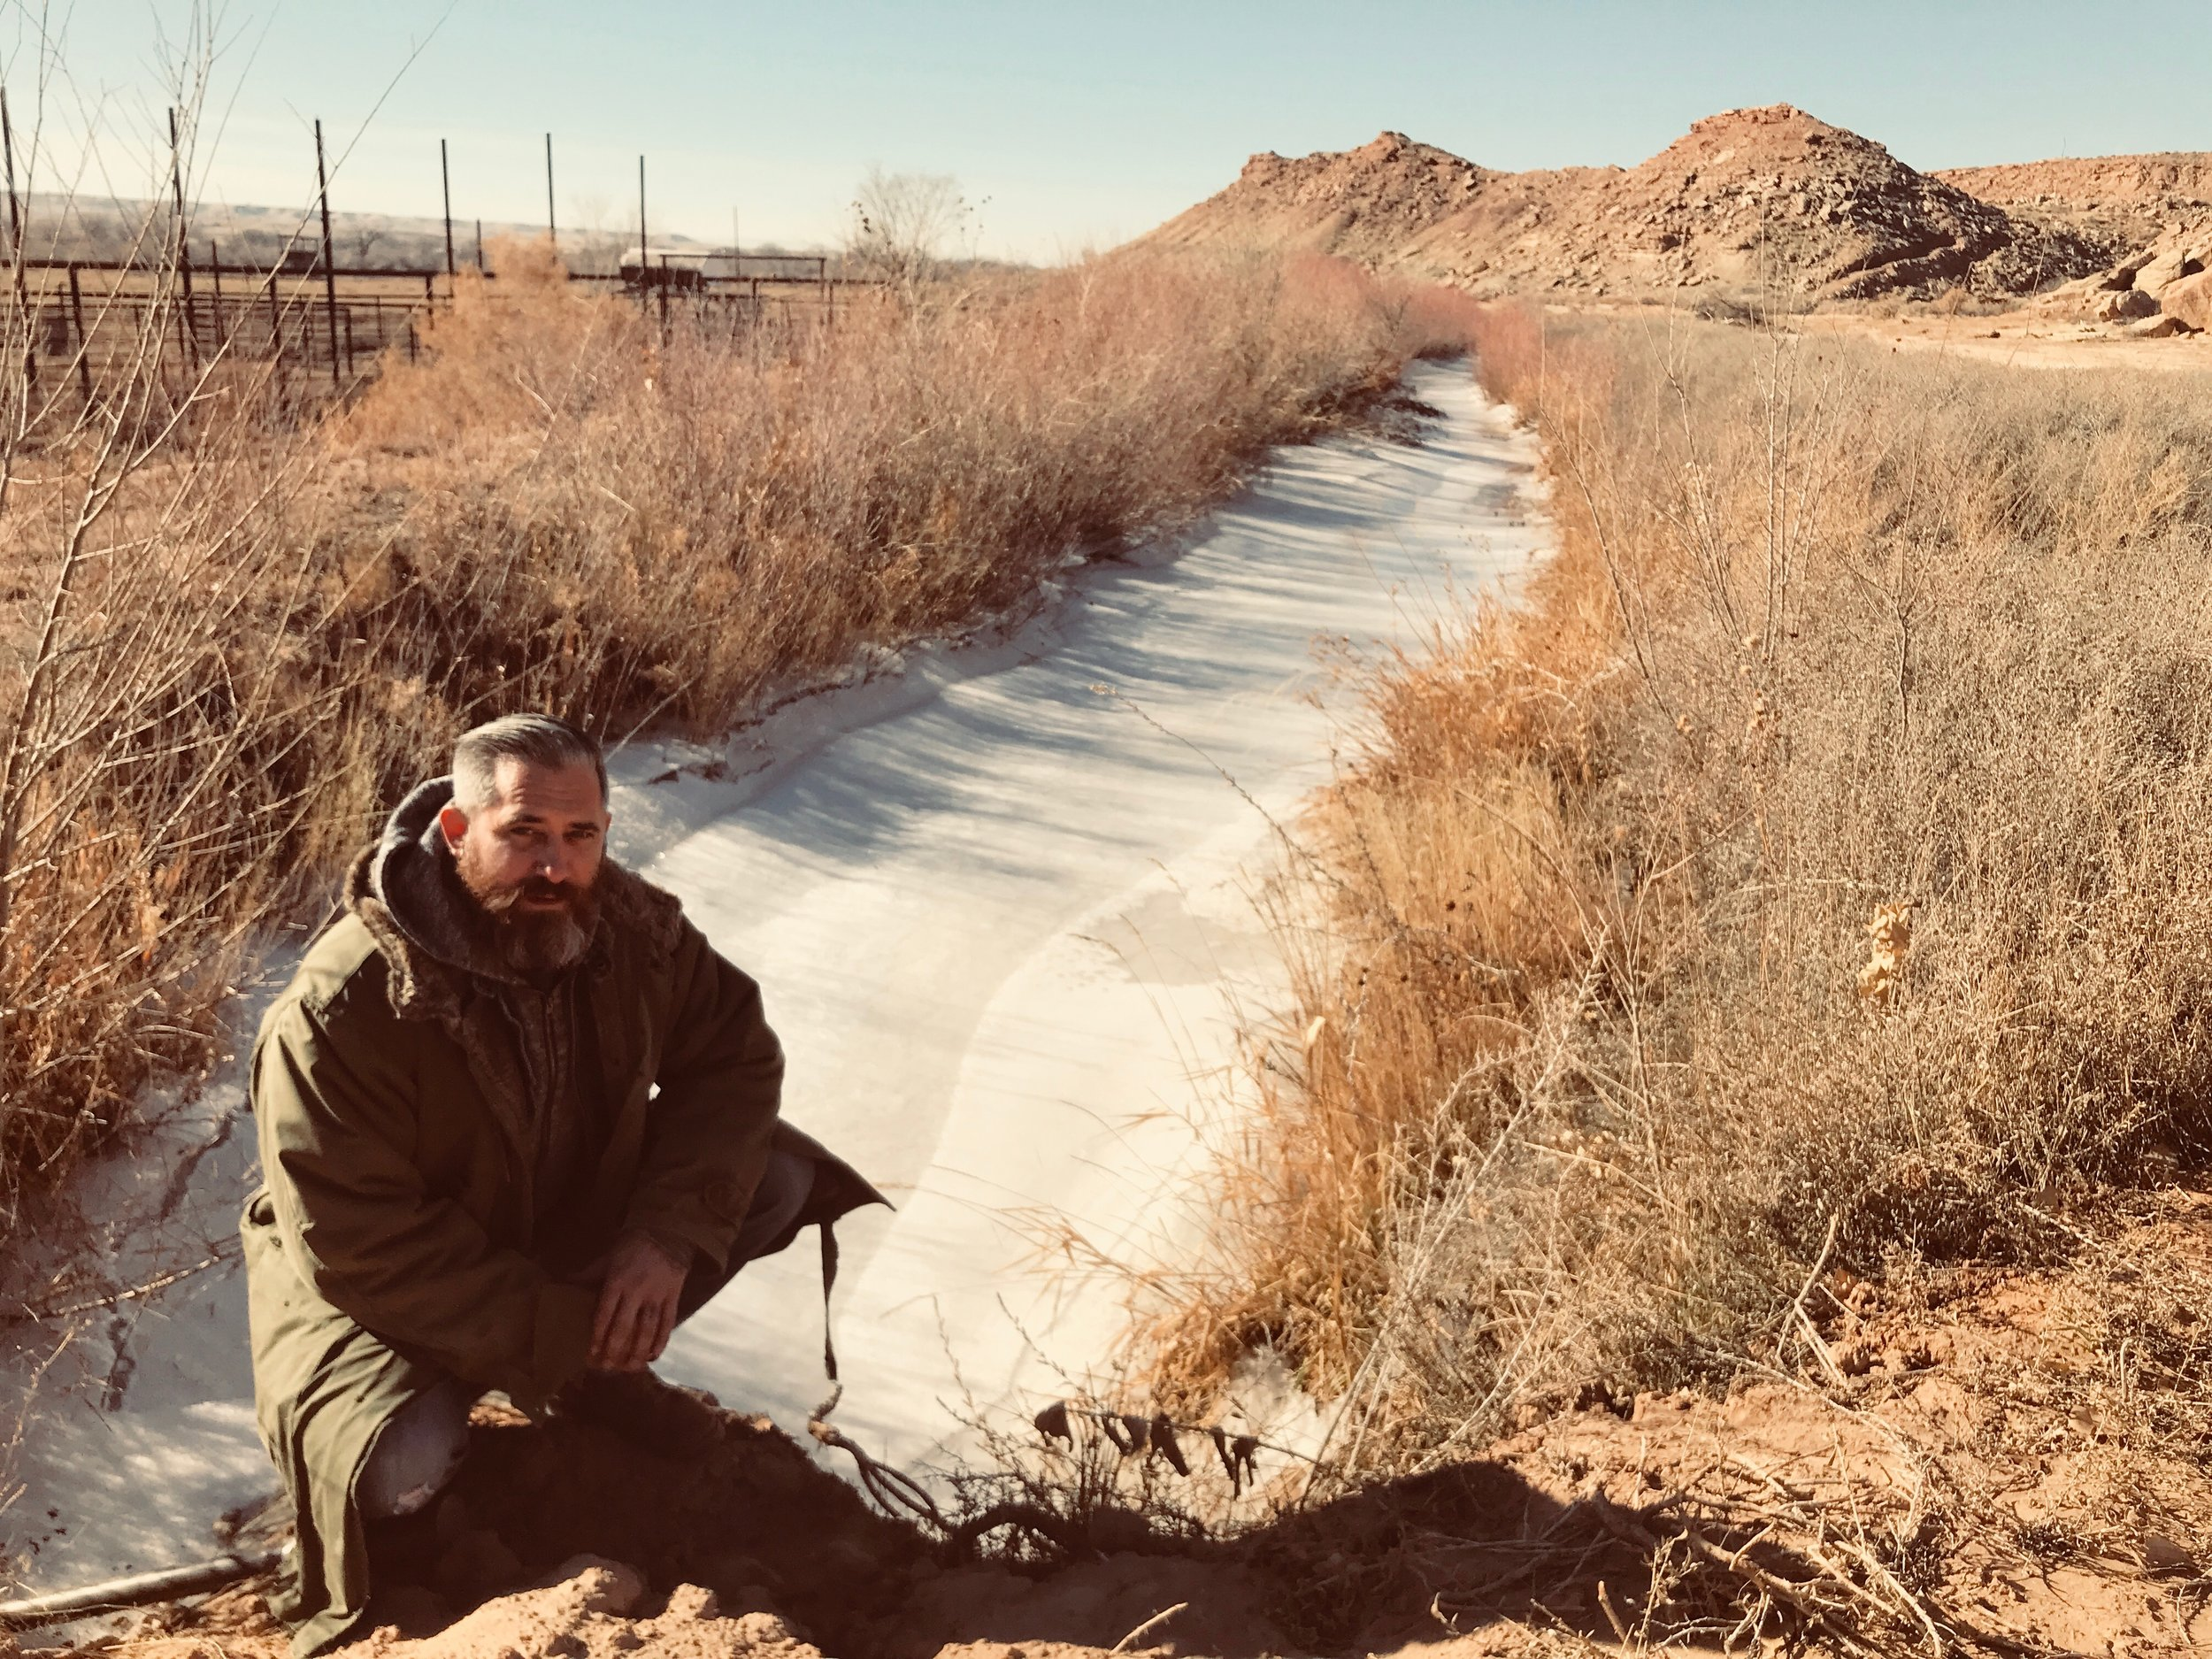 Corbell at Skinwalker Ranch on a recent visit.